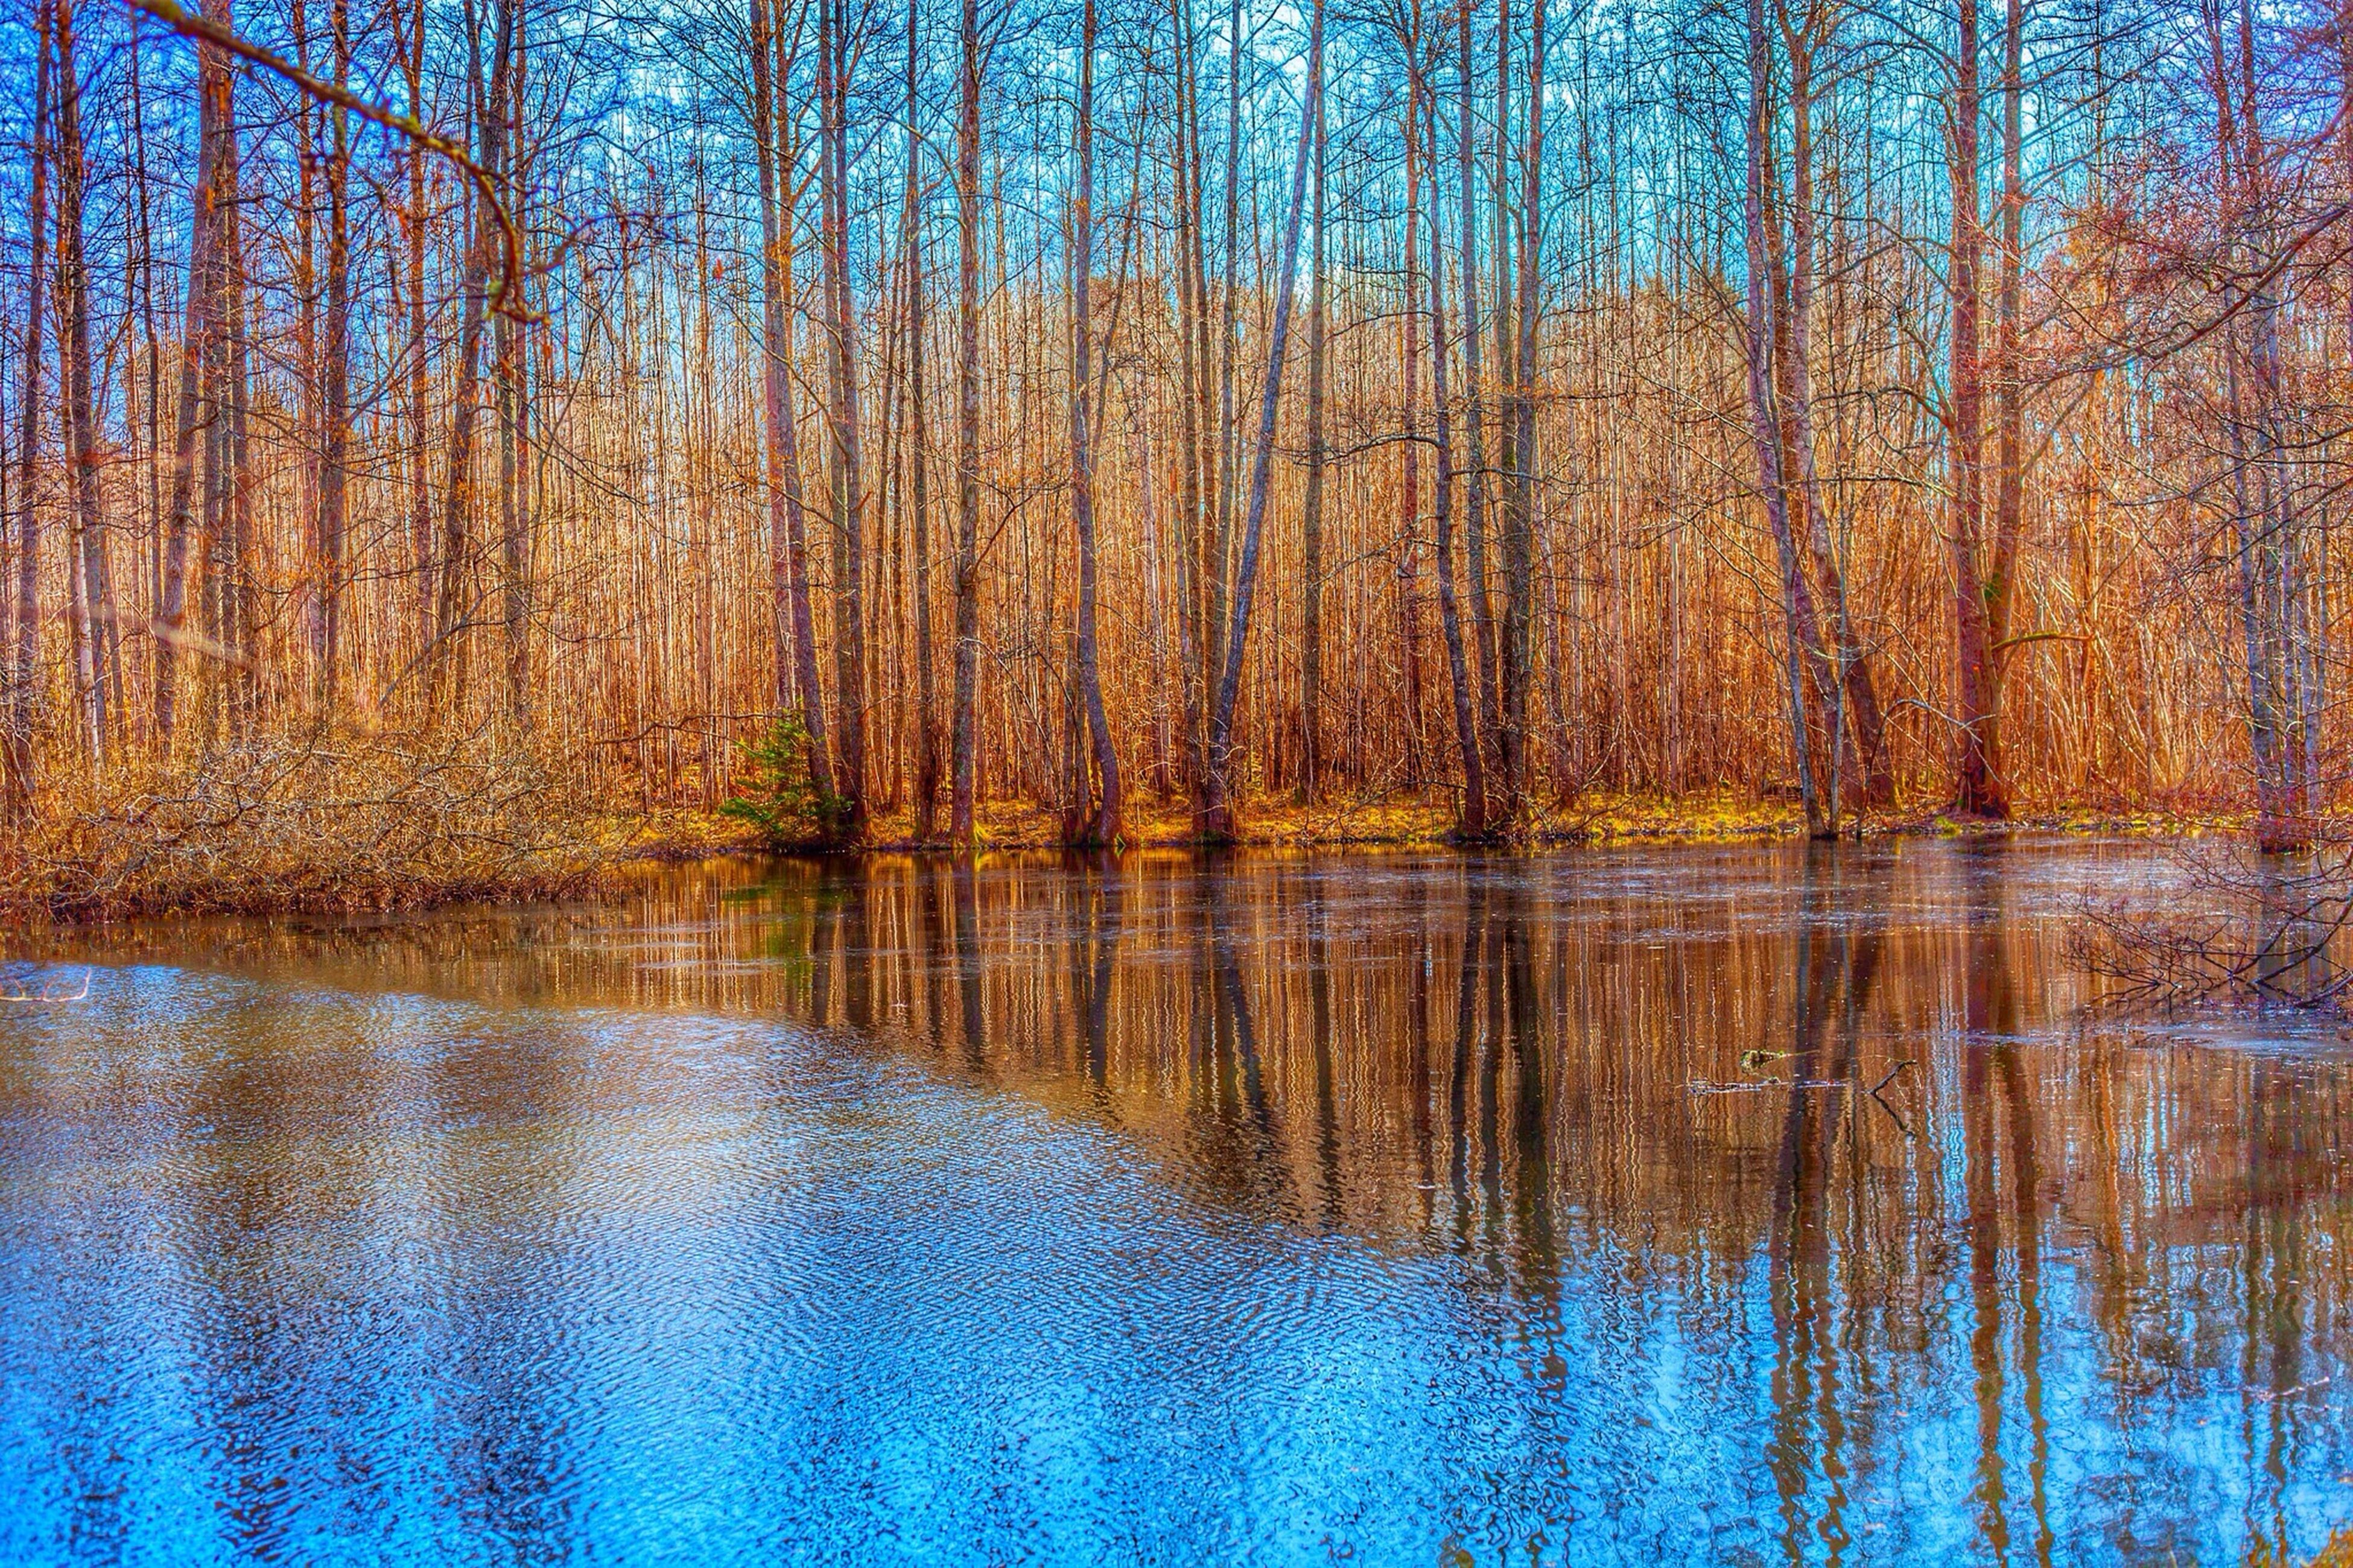 water, tree, reflection, tranquility, tranquil scene, lake, scenics, beauty in nature, waterfront, nature, blue, forest, idyllic, non-urban scene, standing water, outdoors, day, growth, woodland, no people